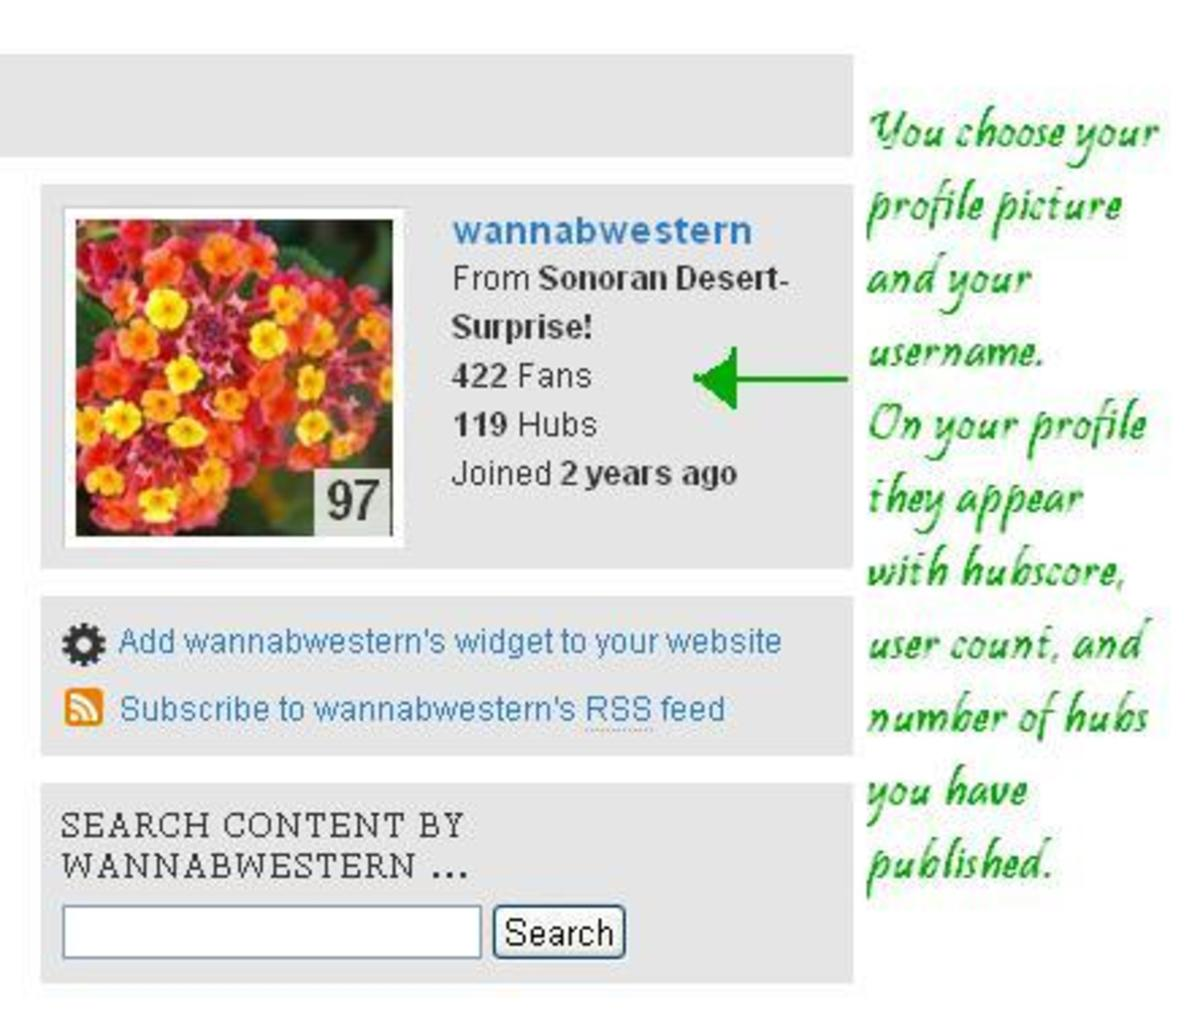 choosing-your-profile-on-hubpages